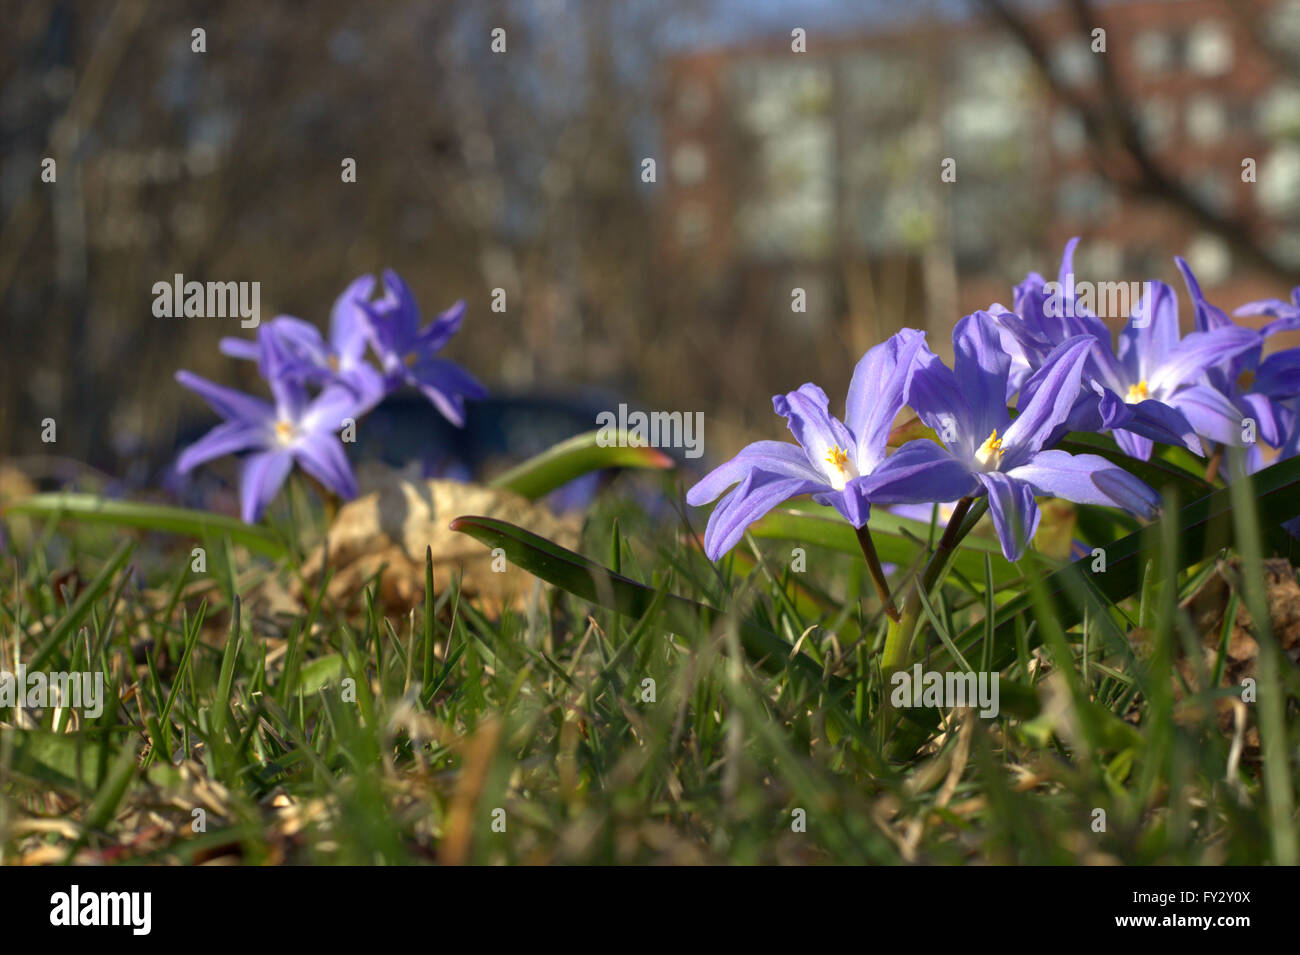 Wild Spring Flowers On The Grass In Helsinki Finland Stock Photo